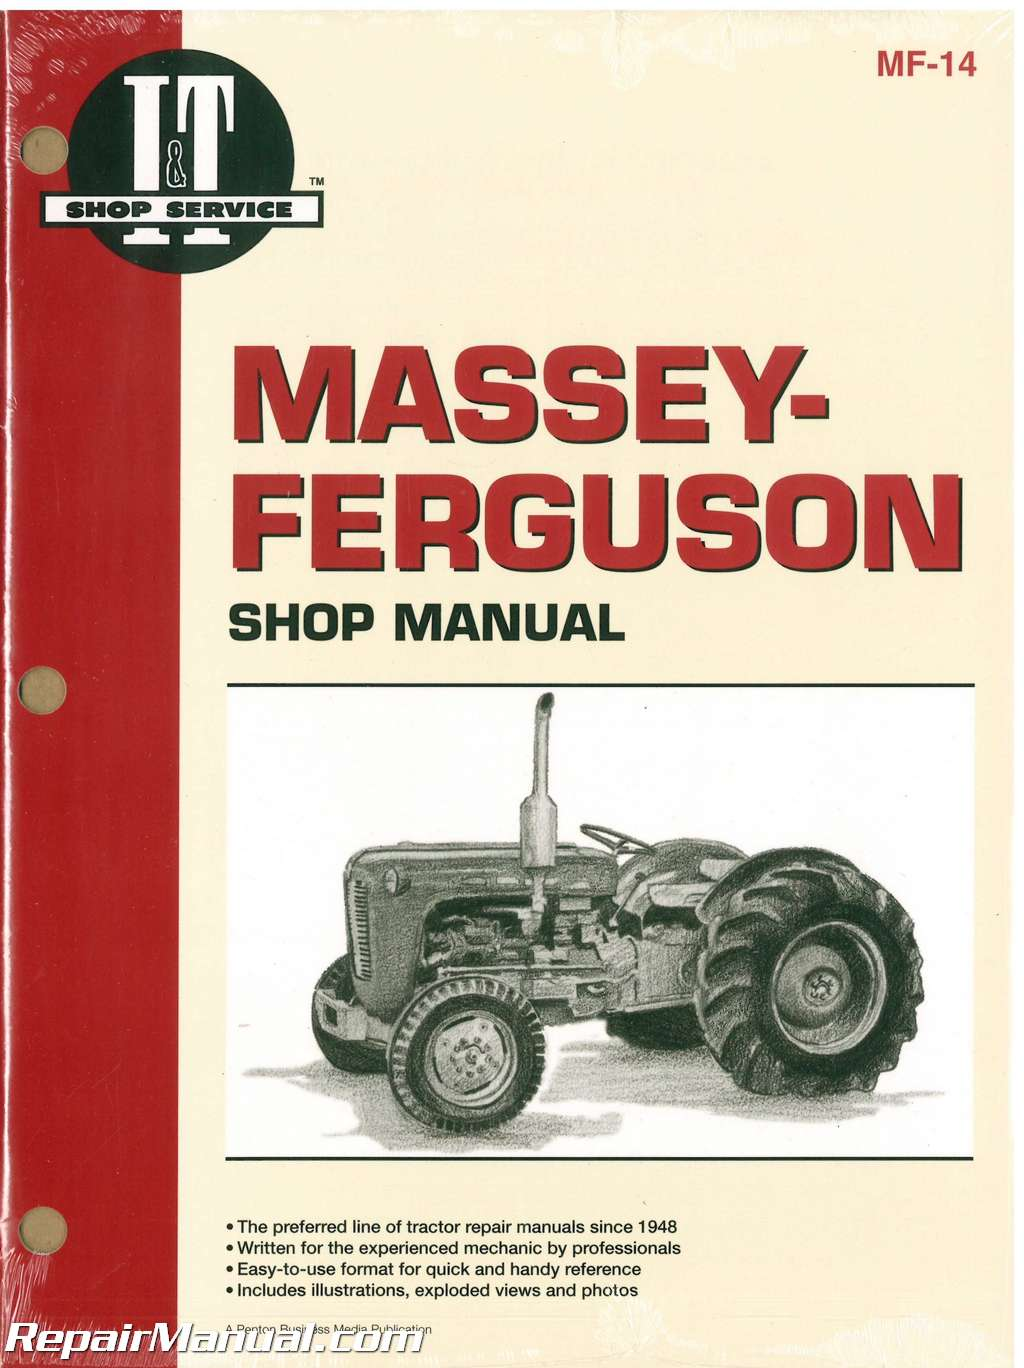 Massey-Ferguson F40, MF202, MF204, MF35, MF35 Diesel, MF50, MH50, MHF202,  TO35, TO35 Diesel Tractor Workshop Manual